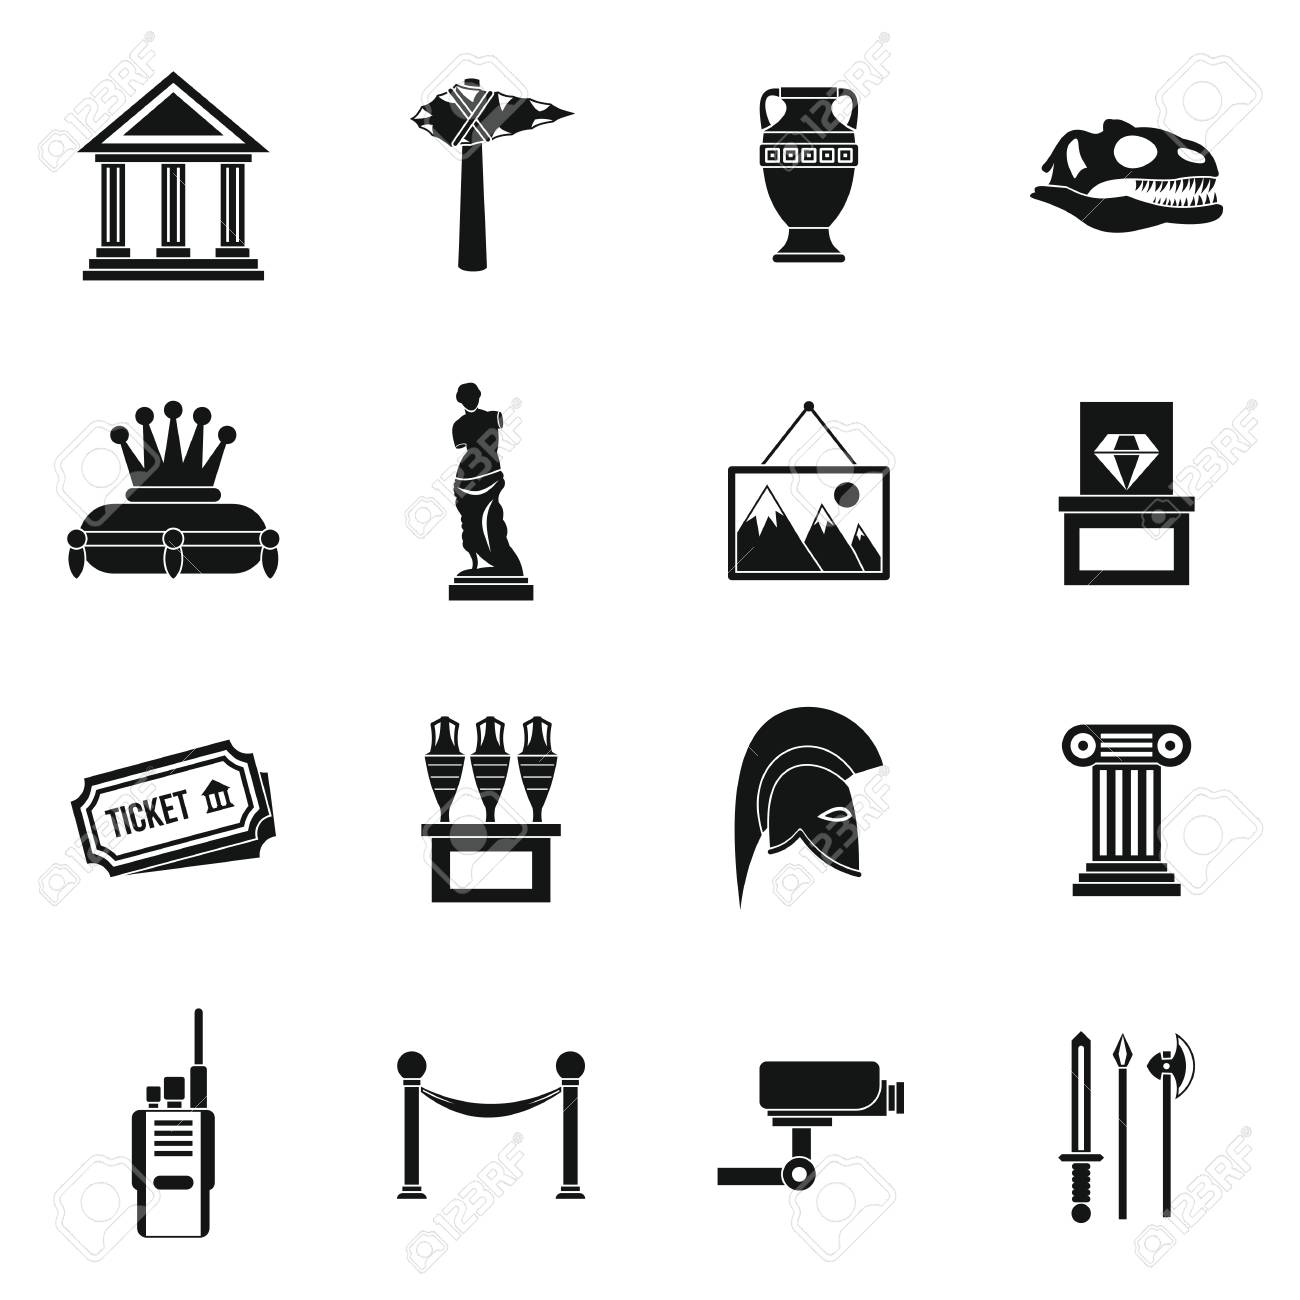 museum icons set in